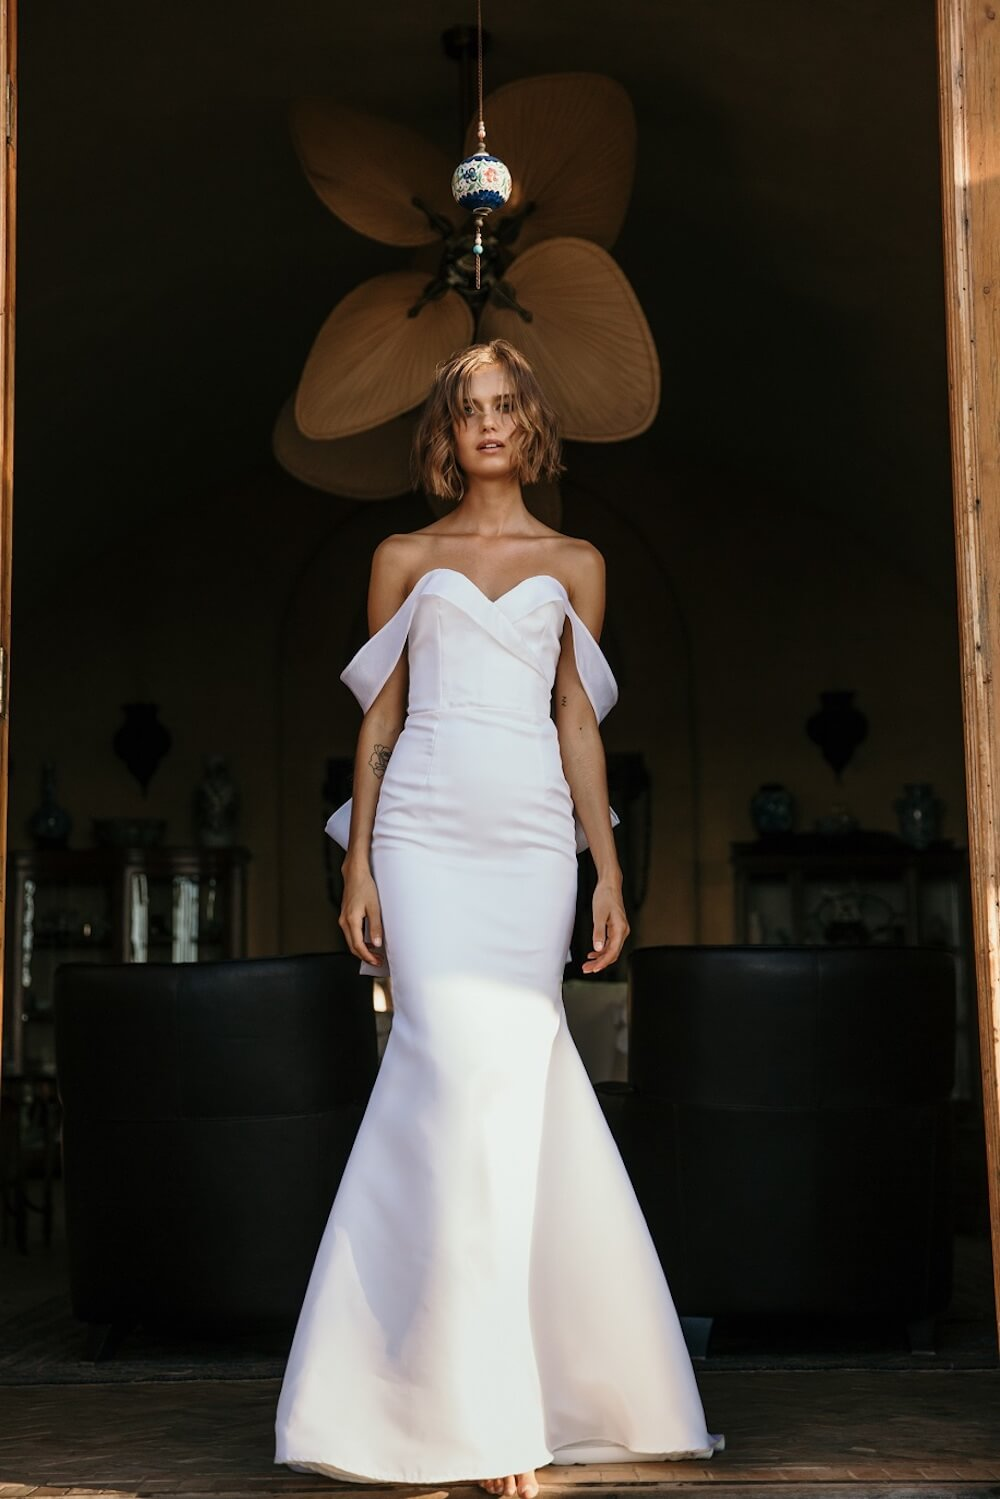 Fleeting Moments wedding dress by Jennifer Go Bridal featured on LOVE FIND CO.